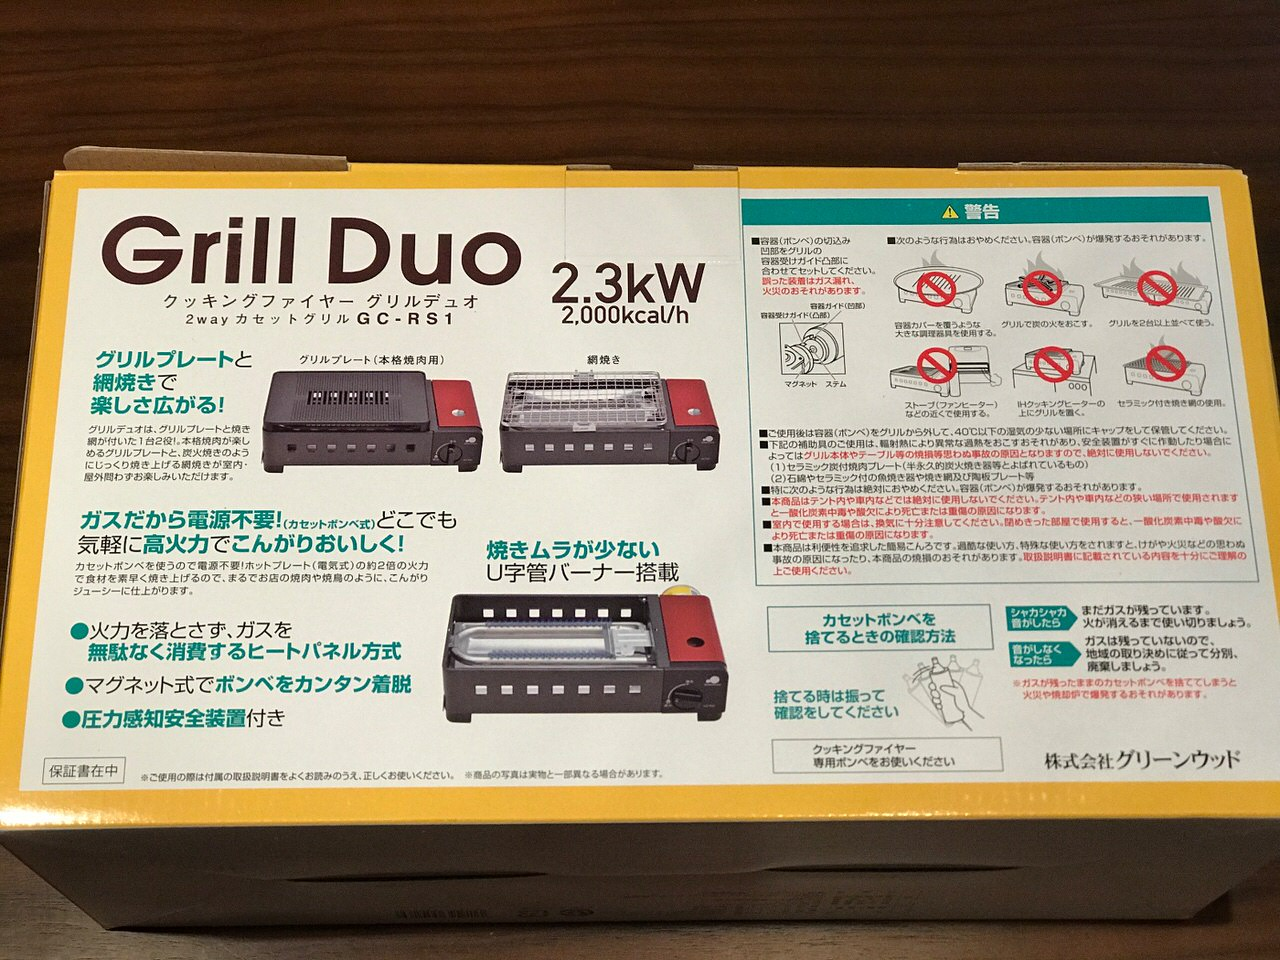 Grill duo 5122